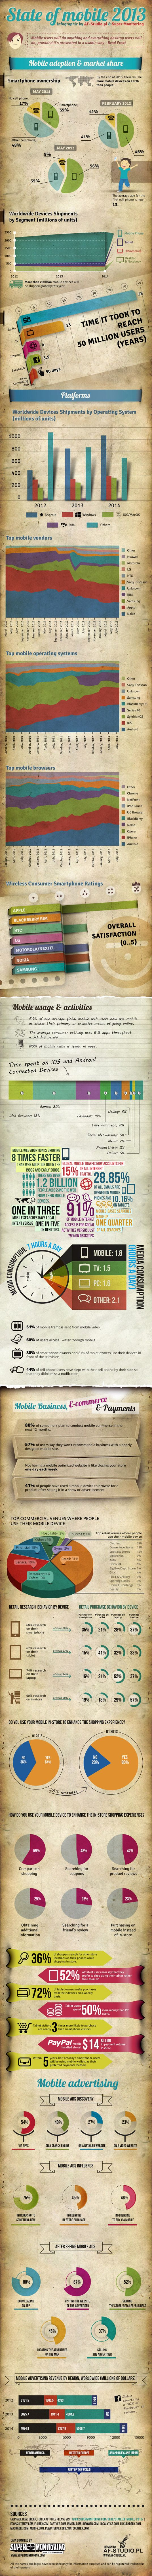 2013 mobile stats round-up. A very handy infographic.